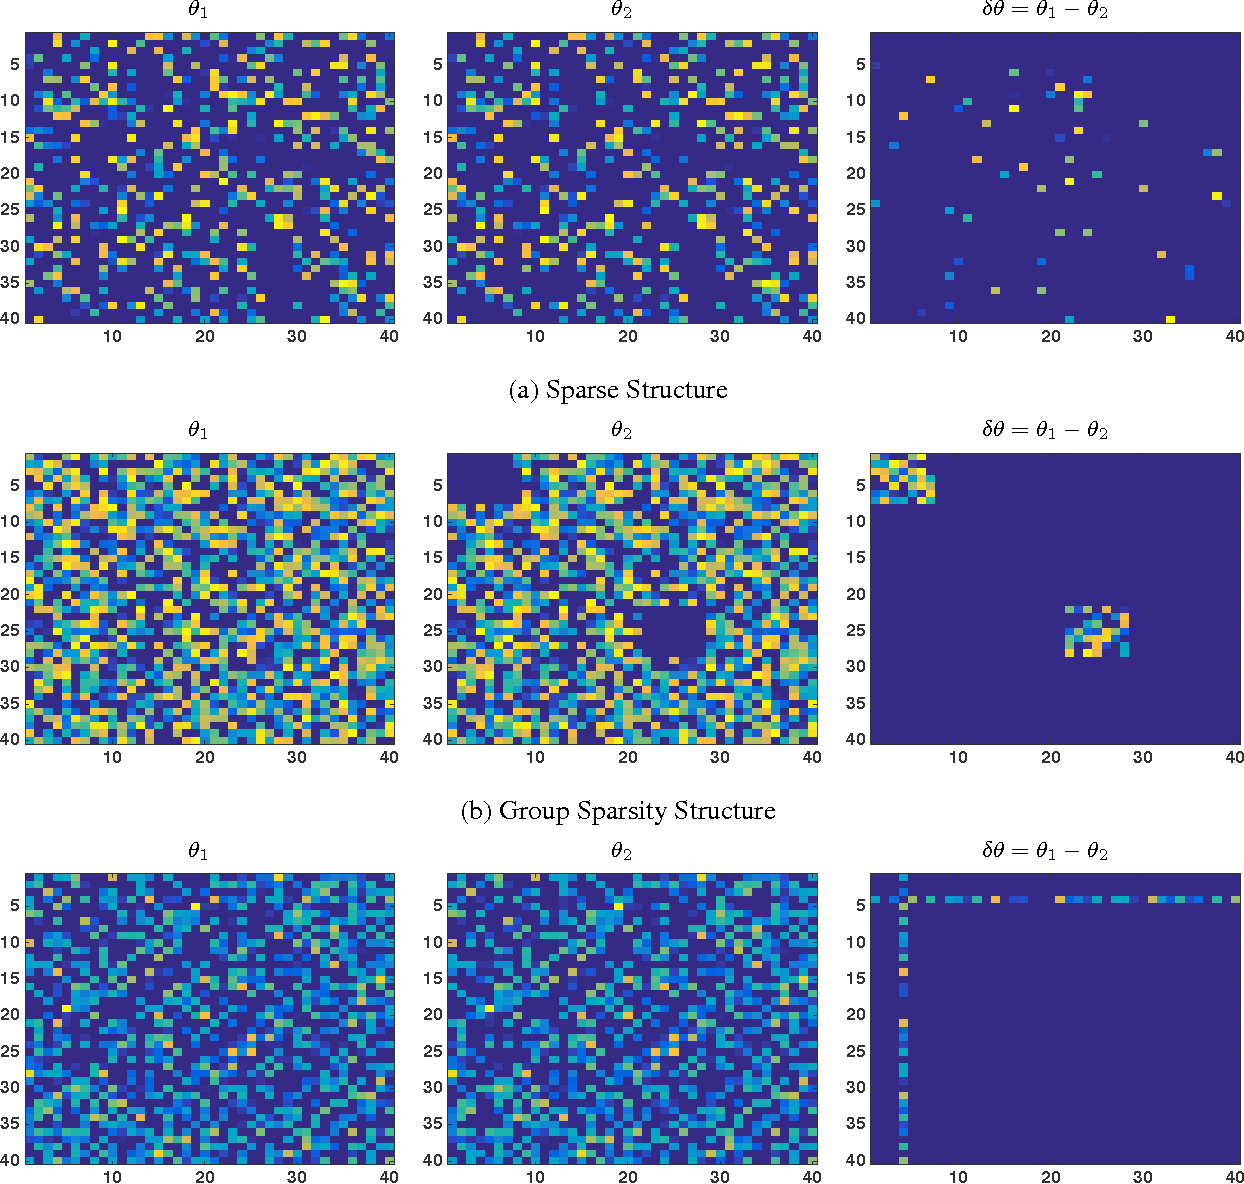 Figure 1 for Generalized Direct Change Estimation in Ising Model Structure